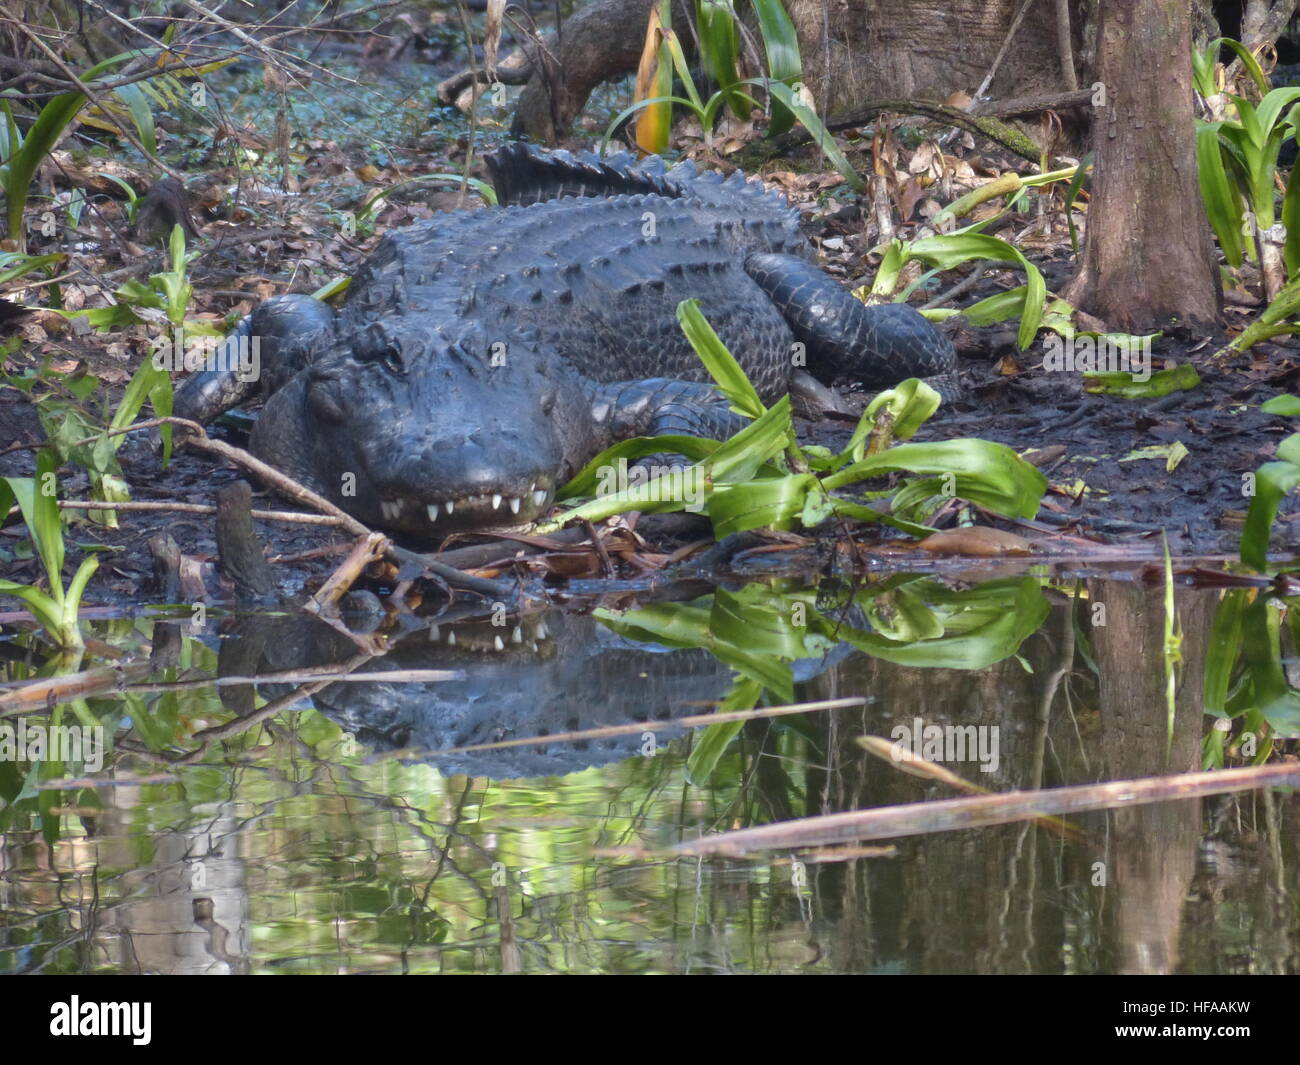 American alligator digesting in shade in Florida Everglades - Stock Image